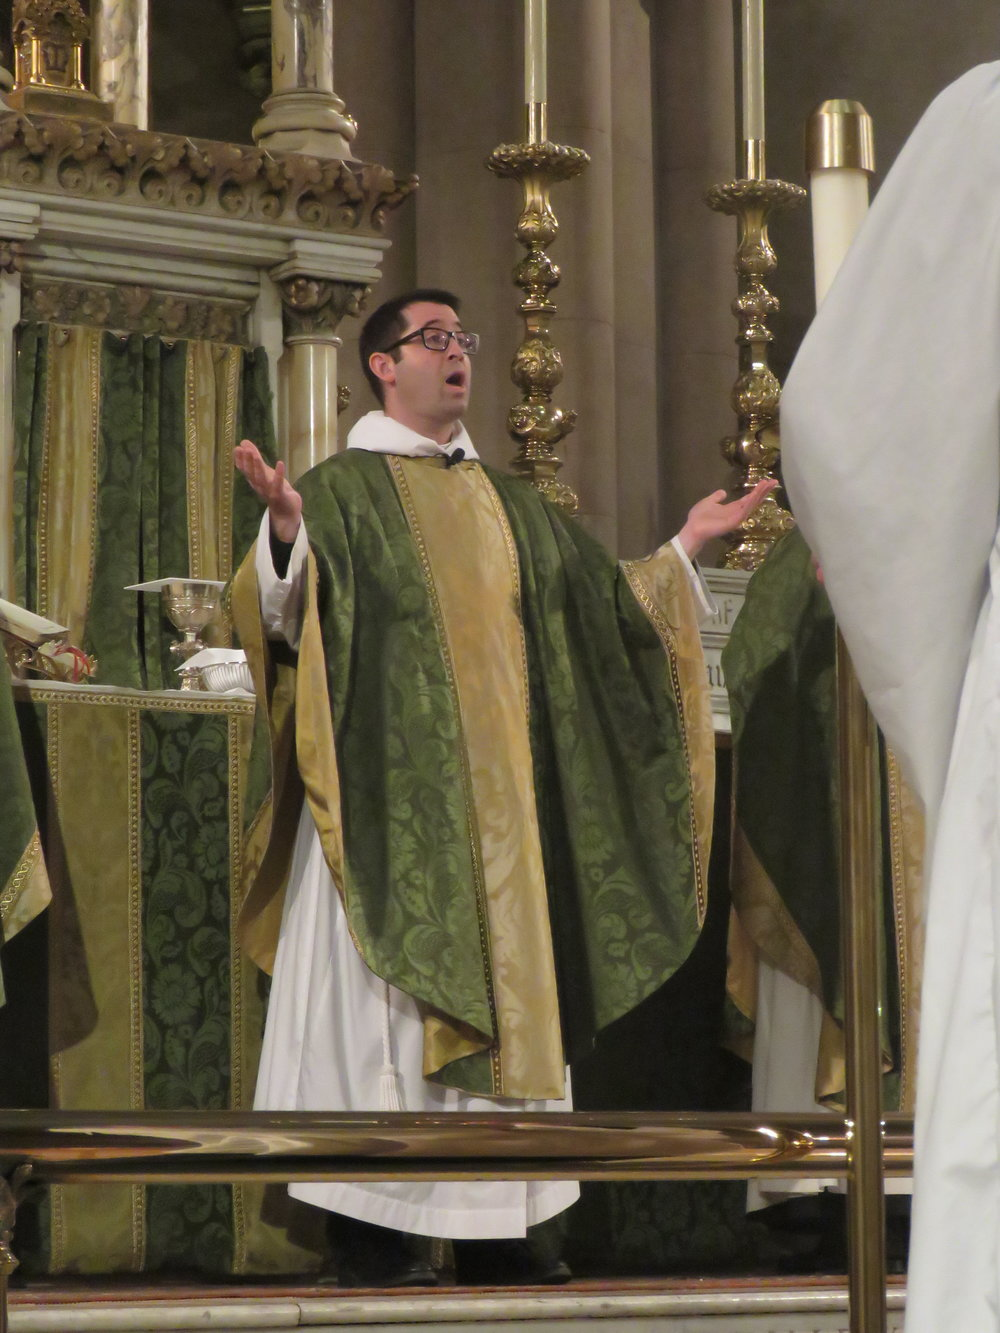 Father Matt Jacobson was celebrant and preacher for the Solemn Mass on Sunday, February 24, 2019.  Photo by Damien Joseph SSF